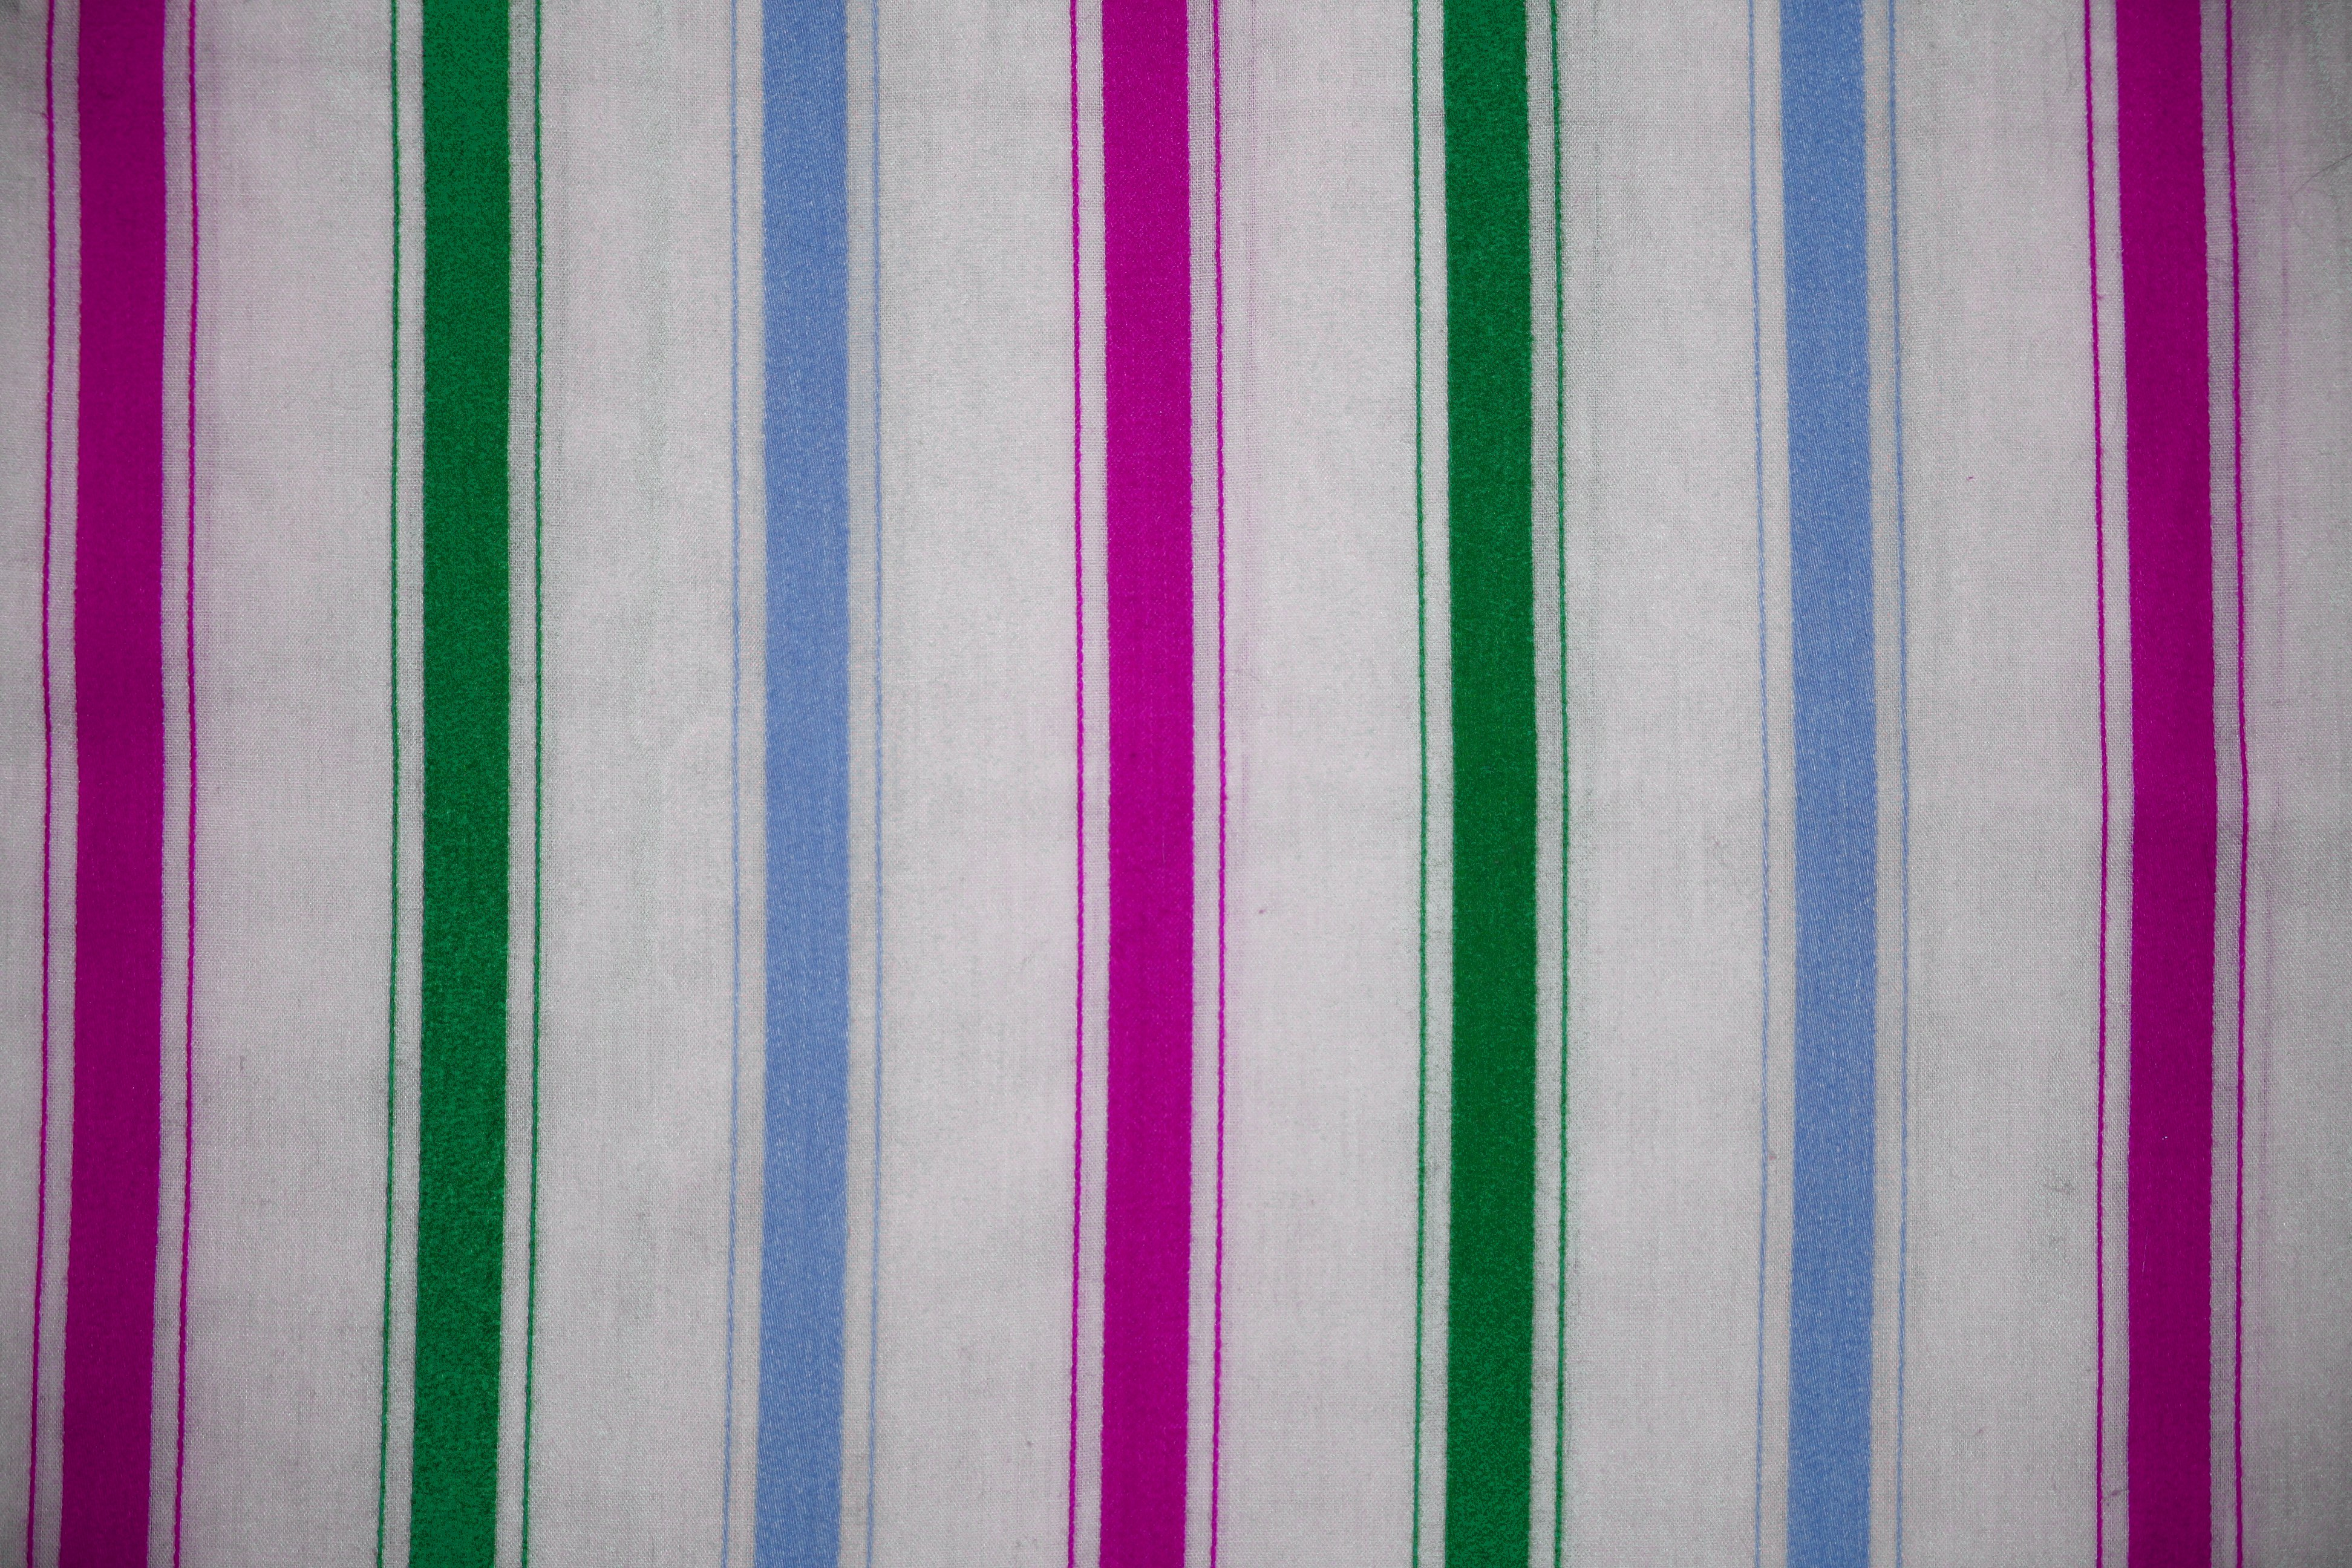 Striped Fabric Texture Green Blue And Pink On White